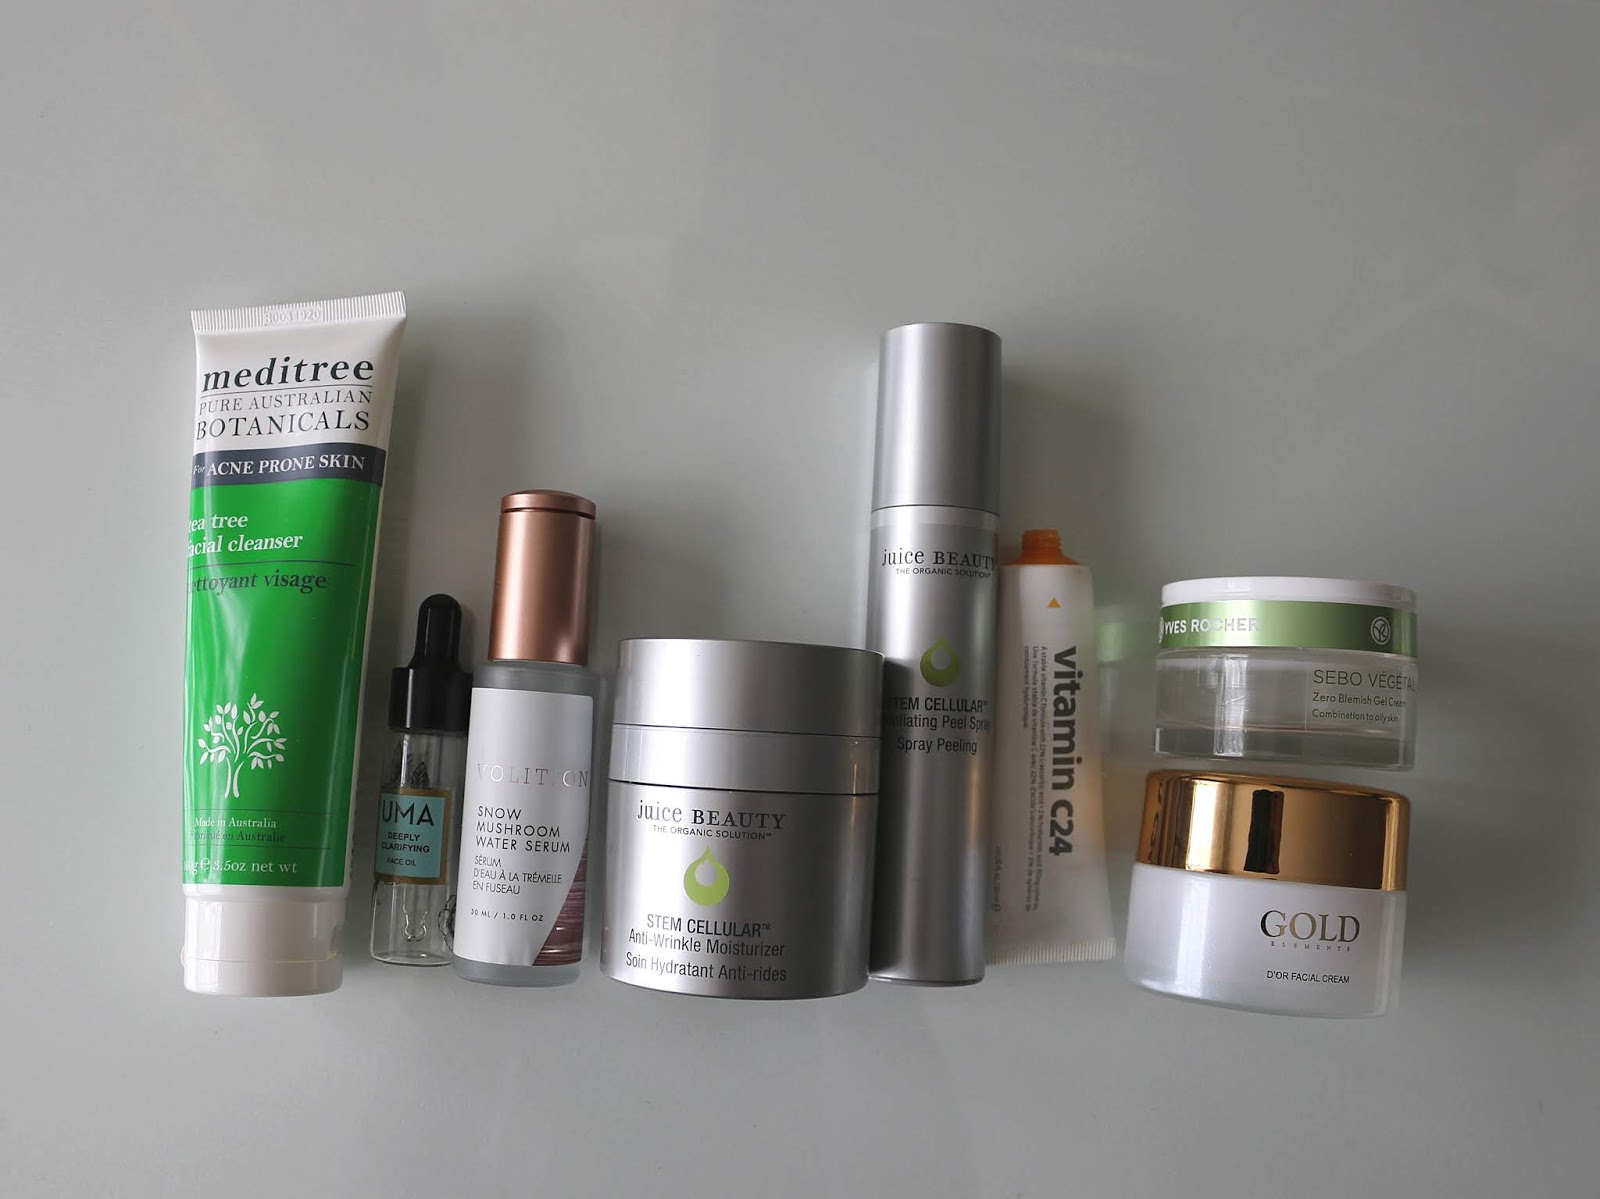 empties volition beauty yves rocher juice beauty meditree indeeds labs uma